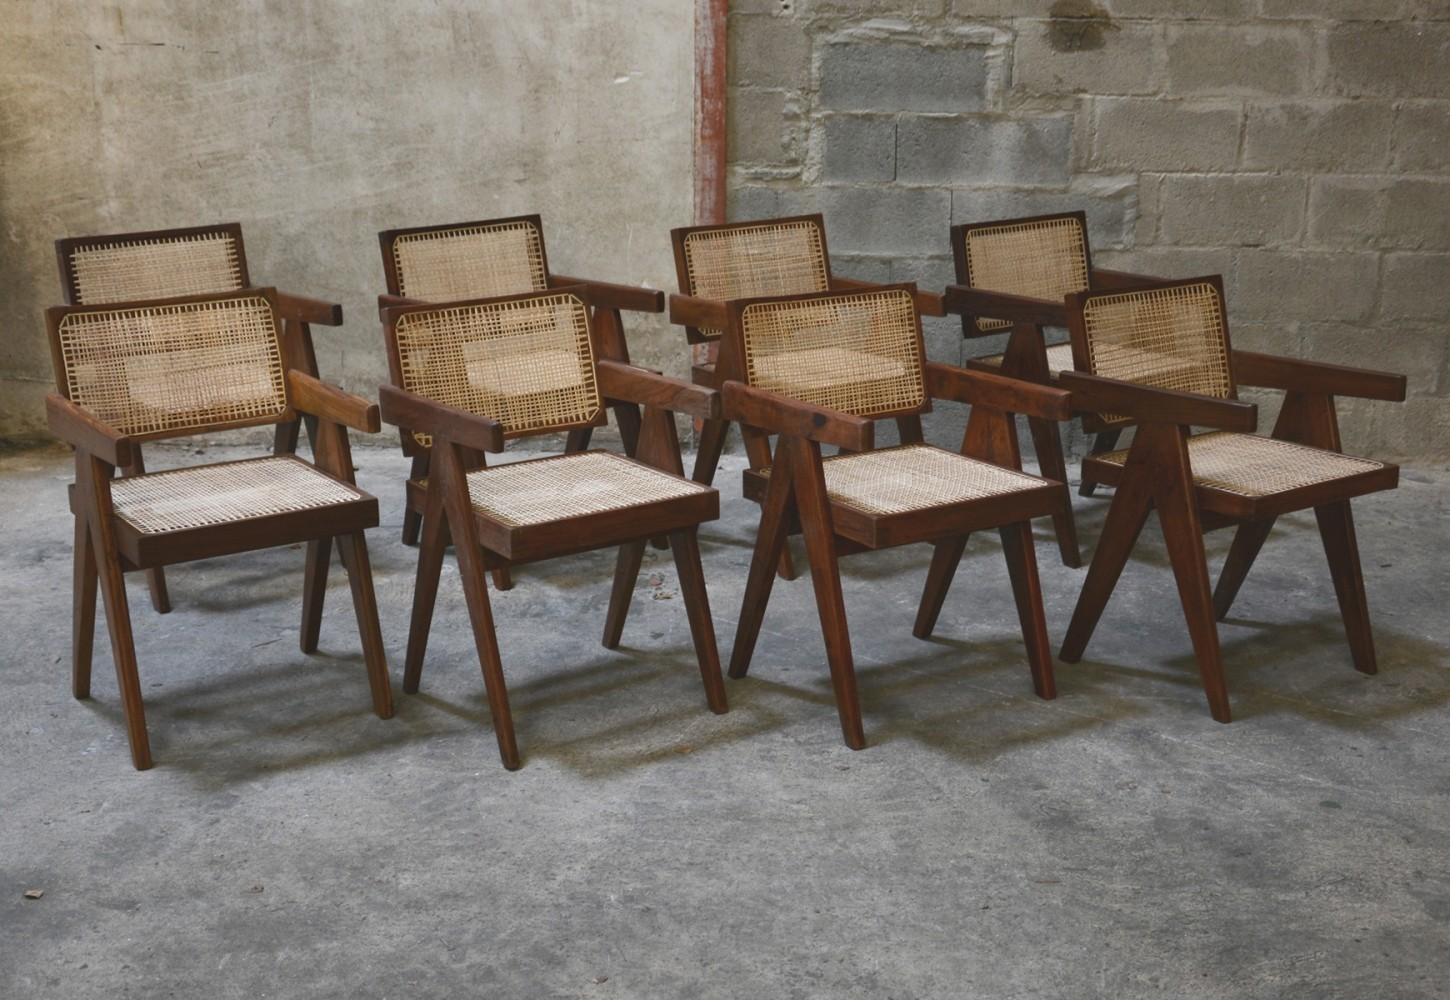 Rare Set of 8 Office Chairs by Pierre Jeanneret